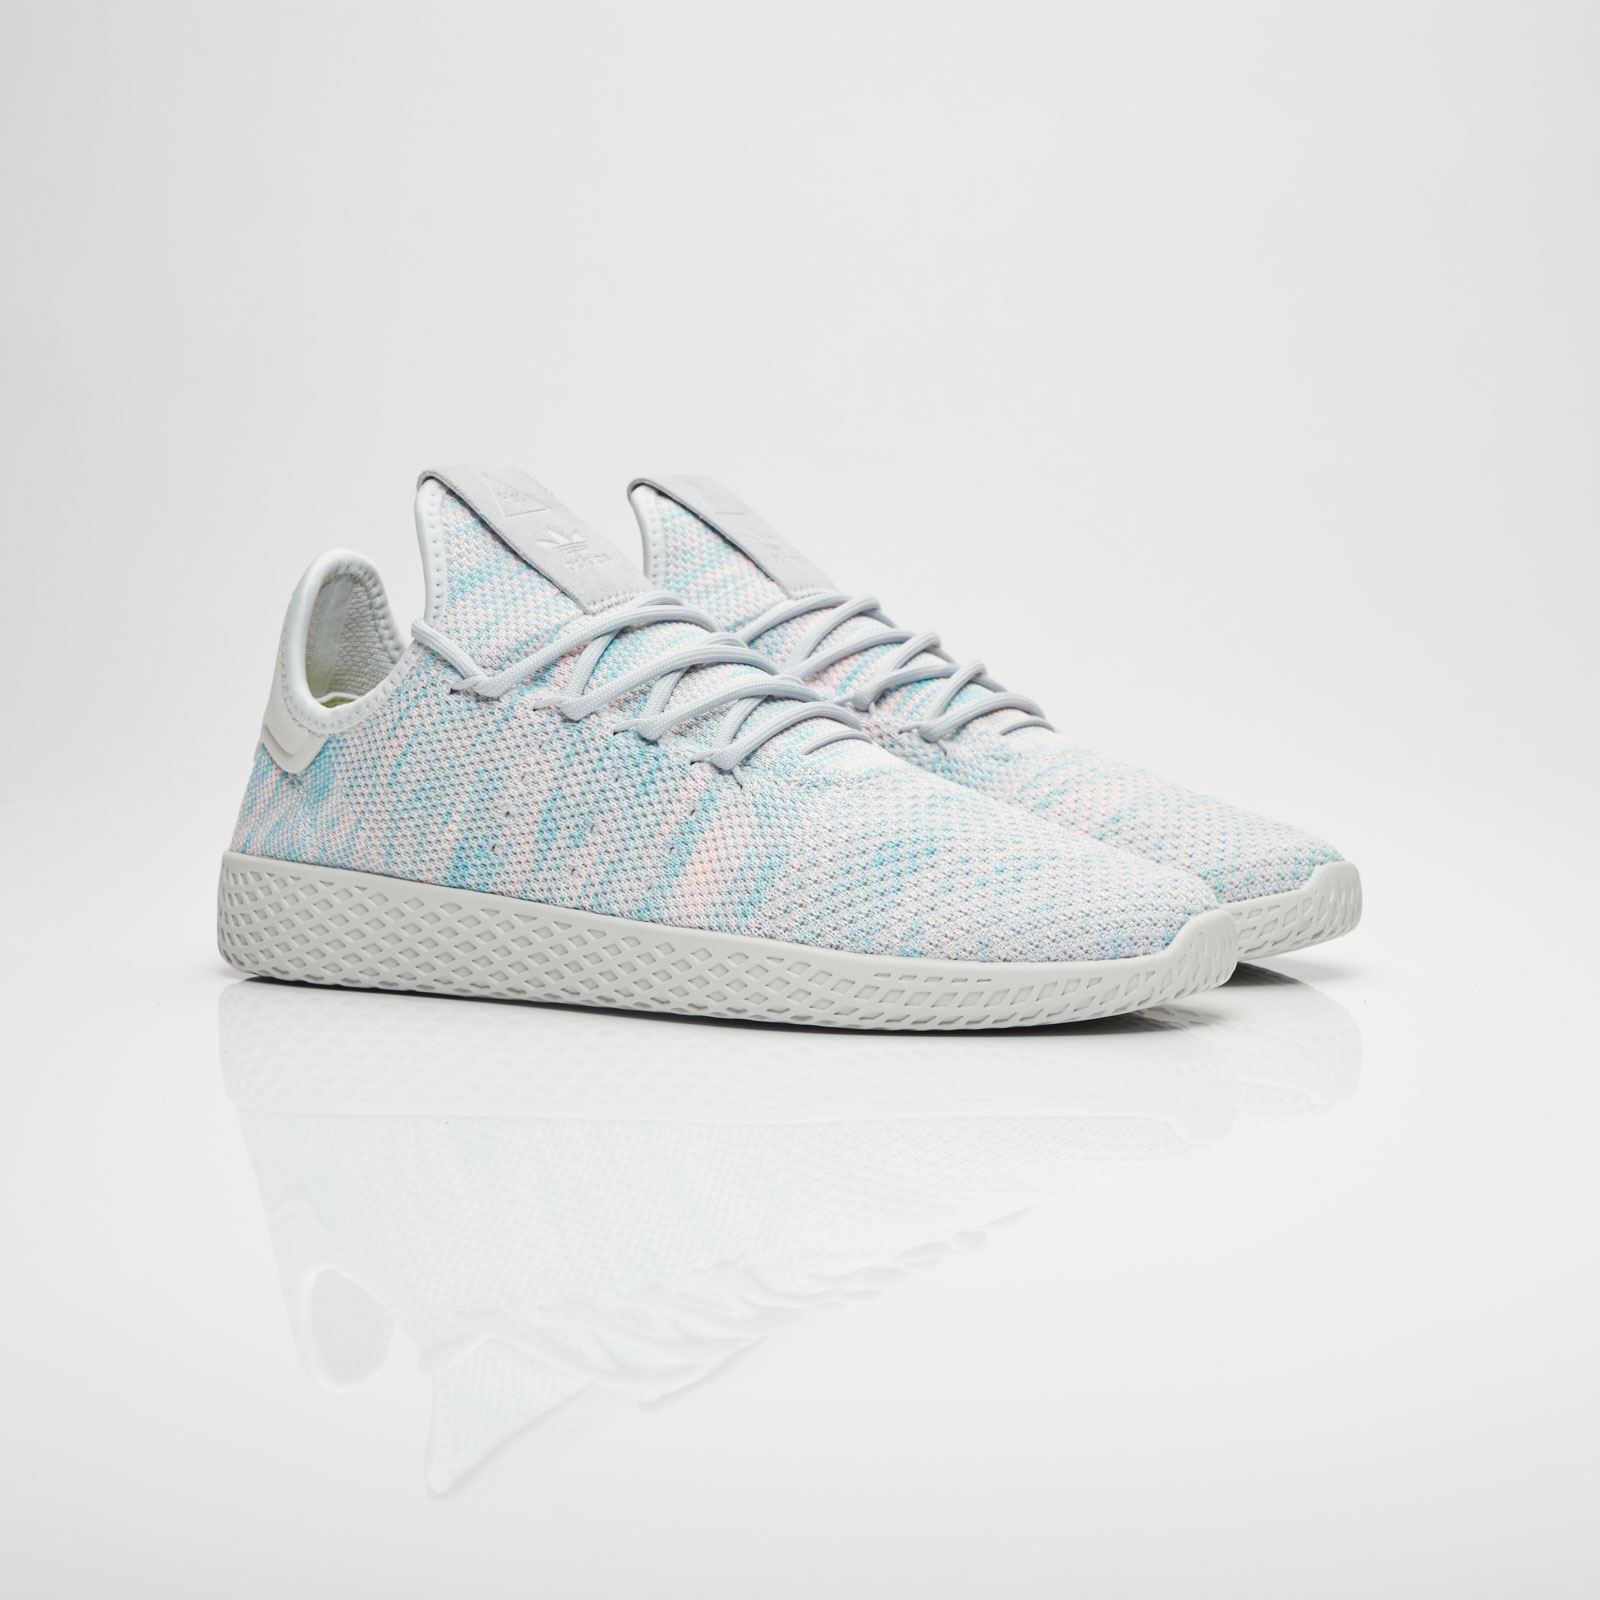 6f3d80964 adidas Pharrell Williams Tennis HU - By2671 - Sneakersnstuff ...